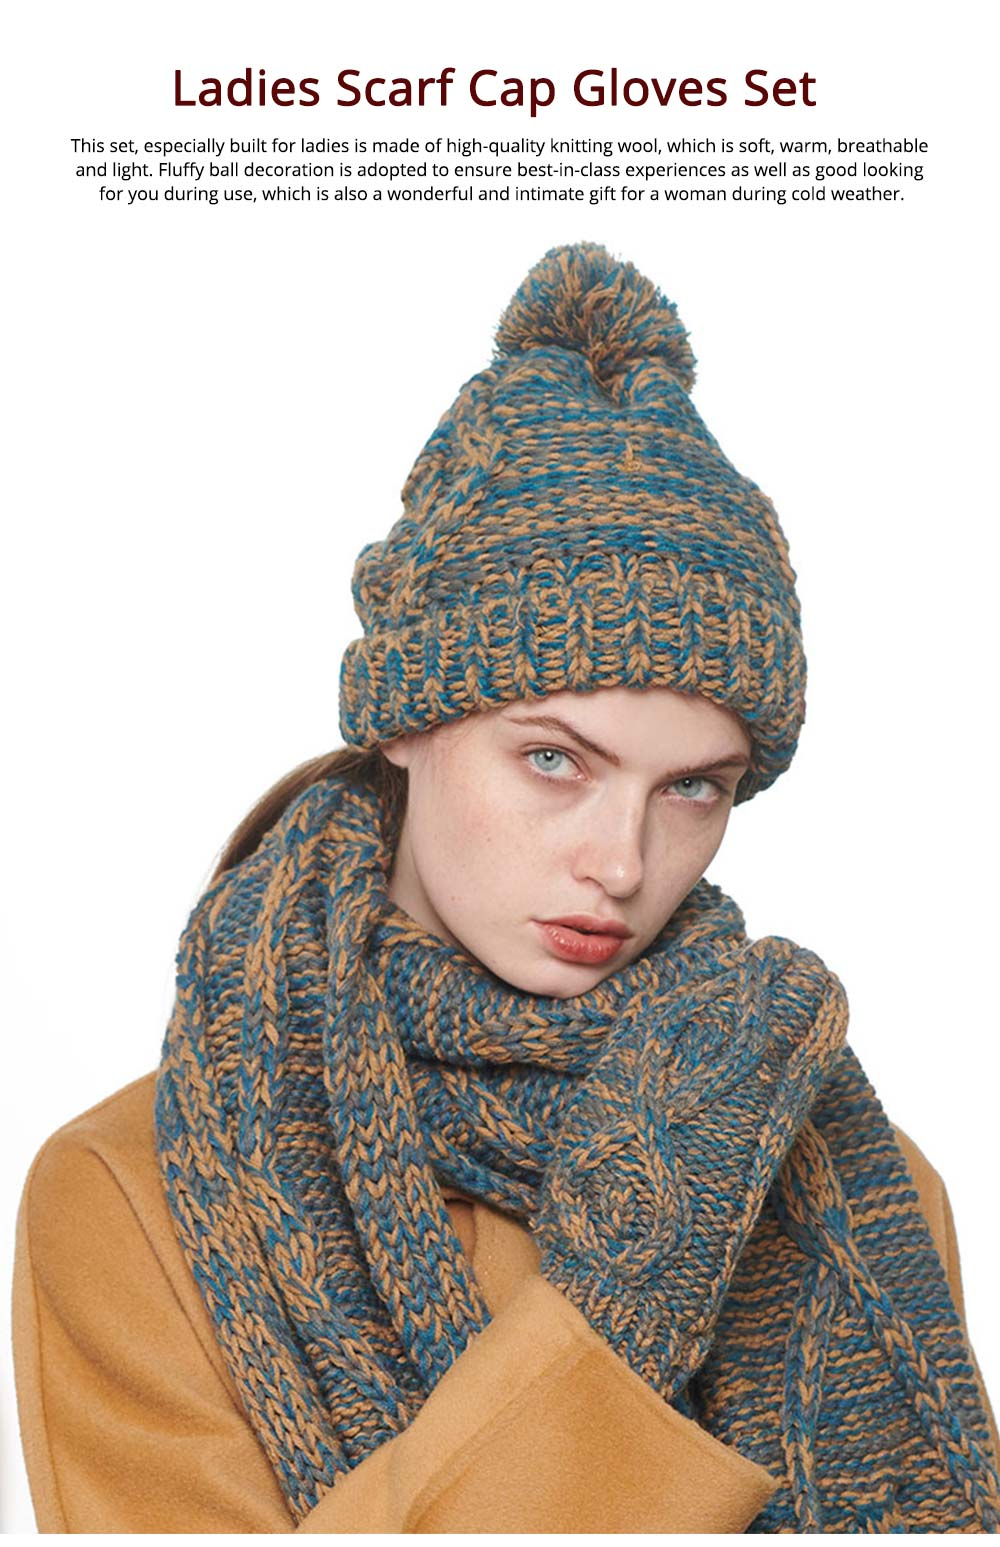 Winter Accessories for Ladies, Colorful Ladies Knitted Scarf Hat Gloves Suit with Wool Ball Decoration, Thicken Warm Autumn Winter 3 PCS Set  6